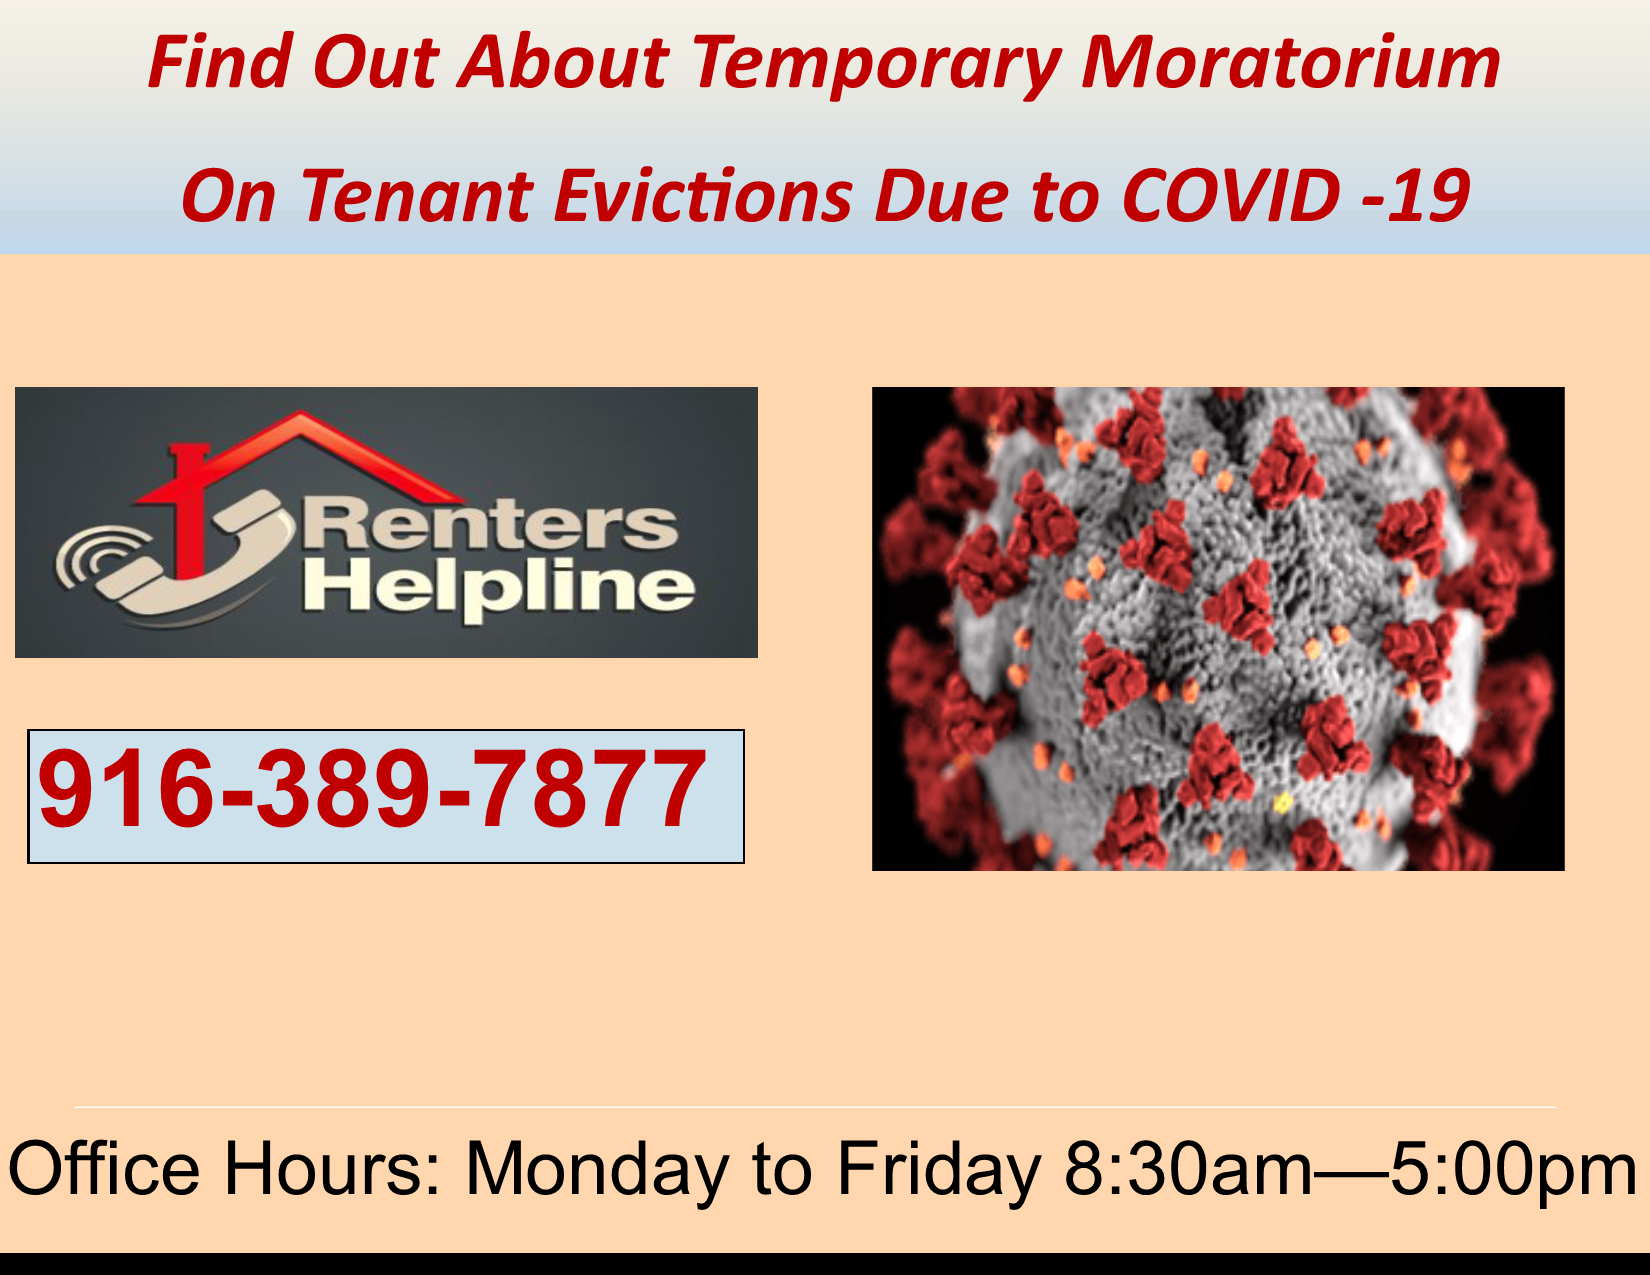 Information about the temporary moratorium on tenant evictions due toCall the Renters Helpline today at 916-389-7877  COVID-19.